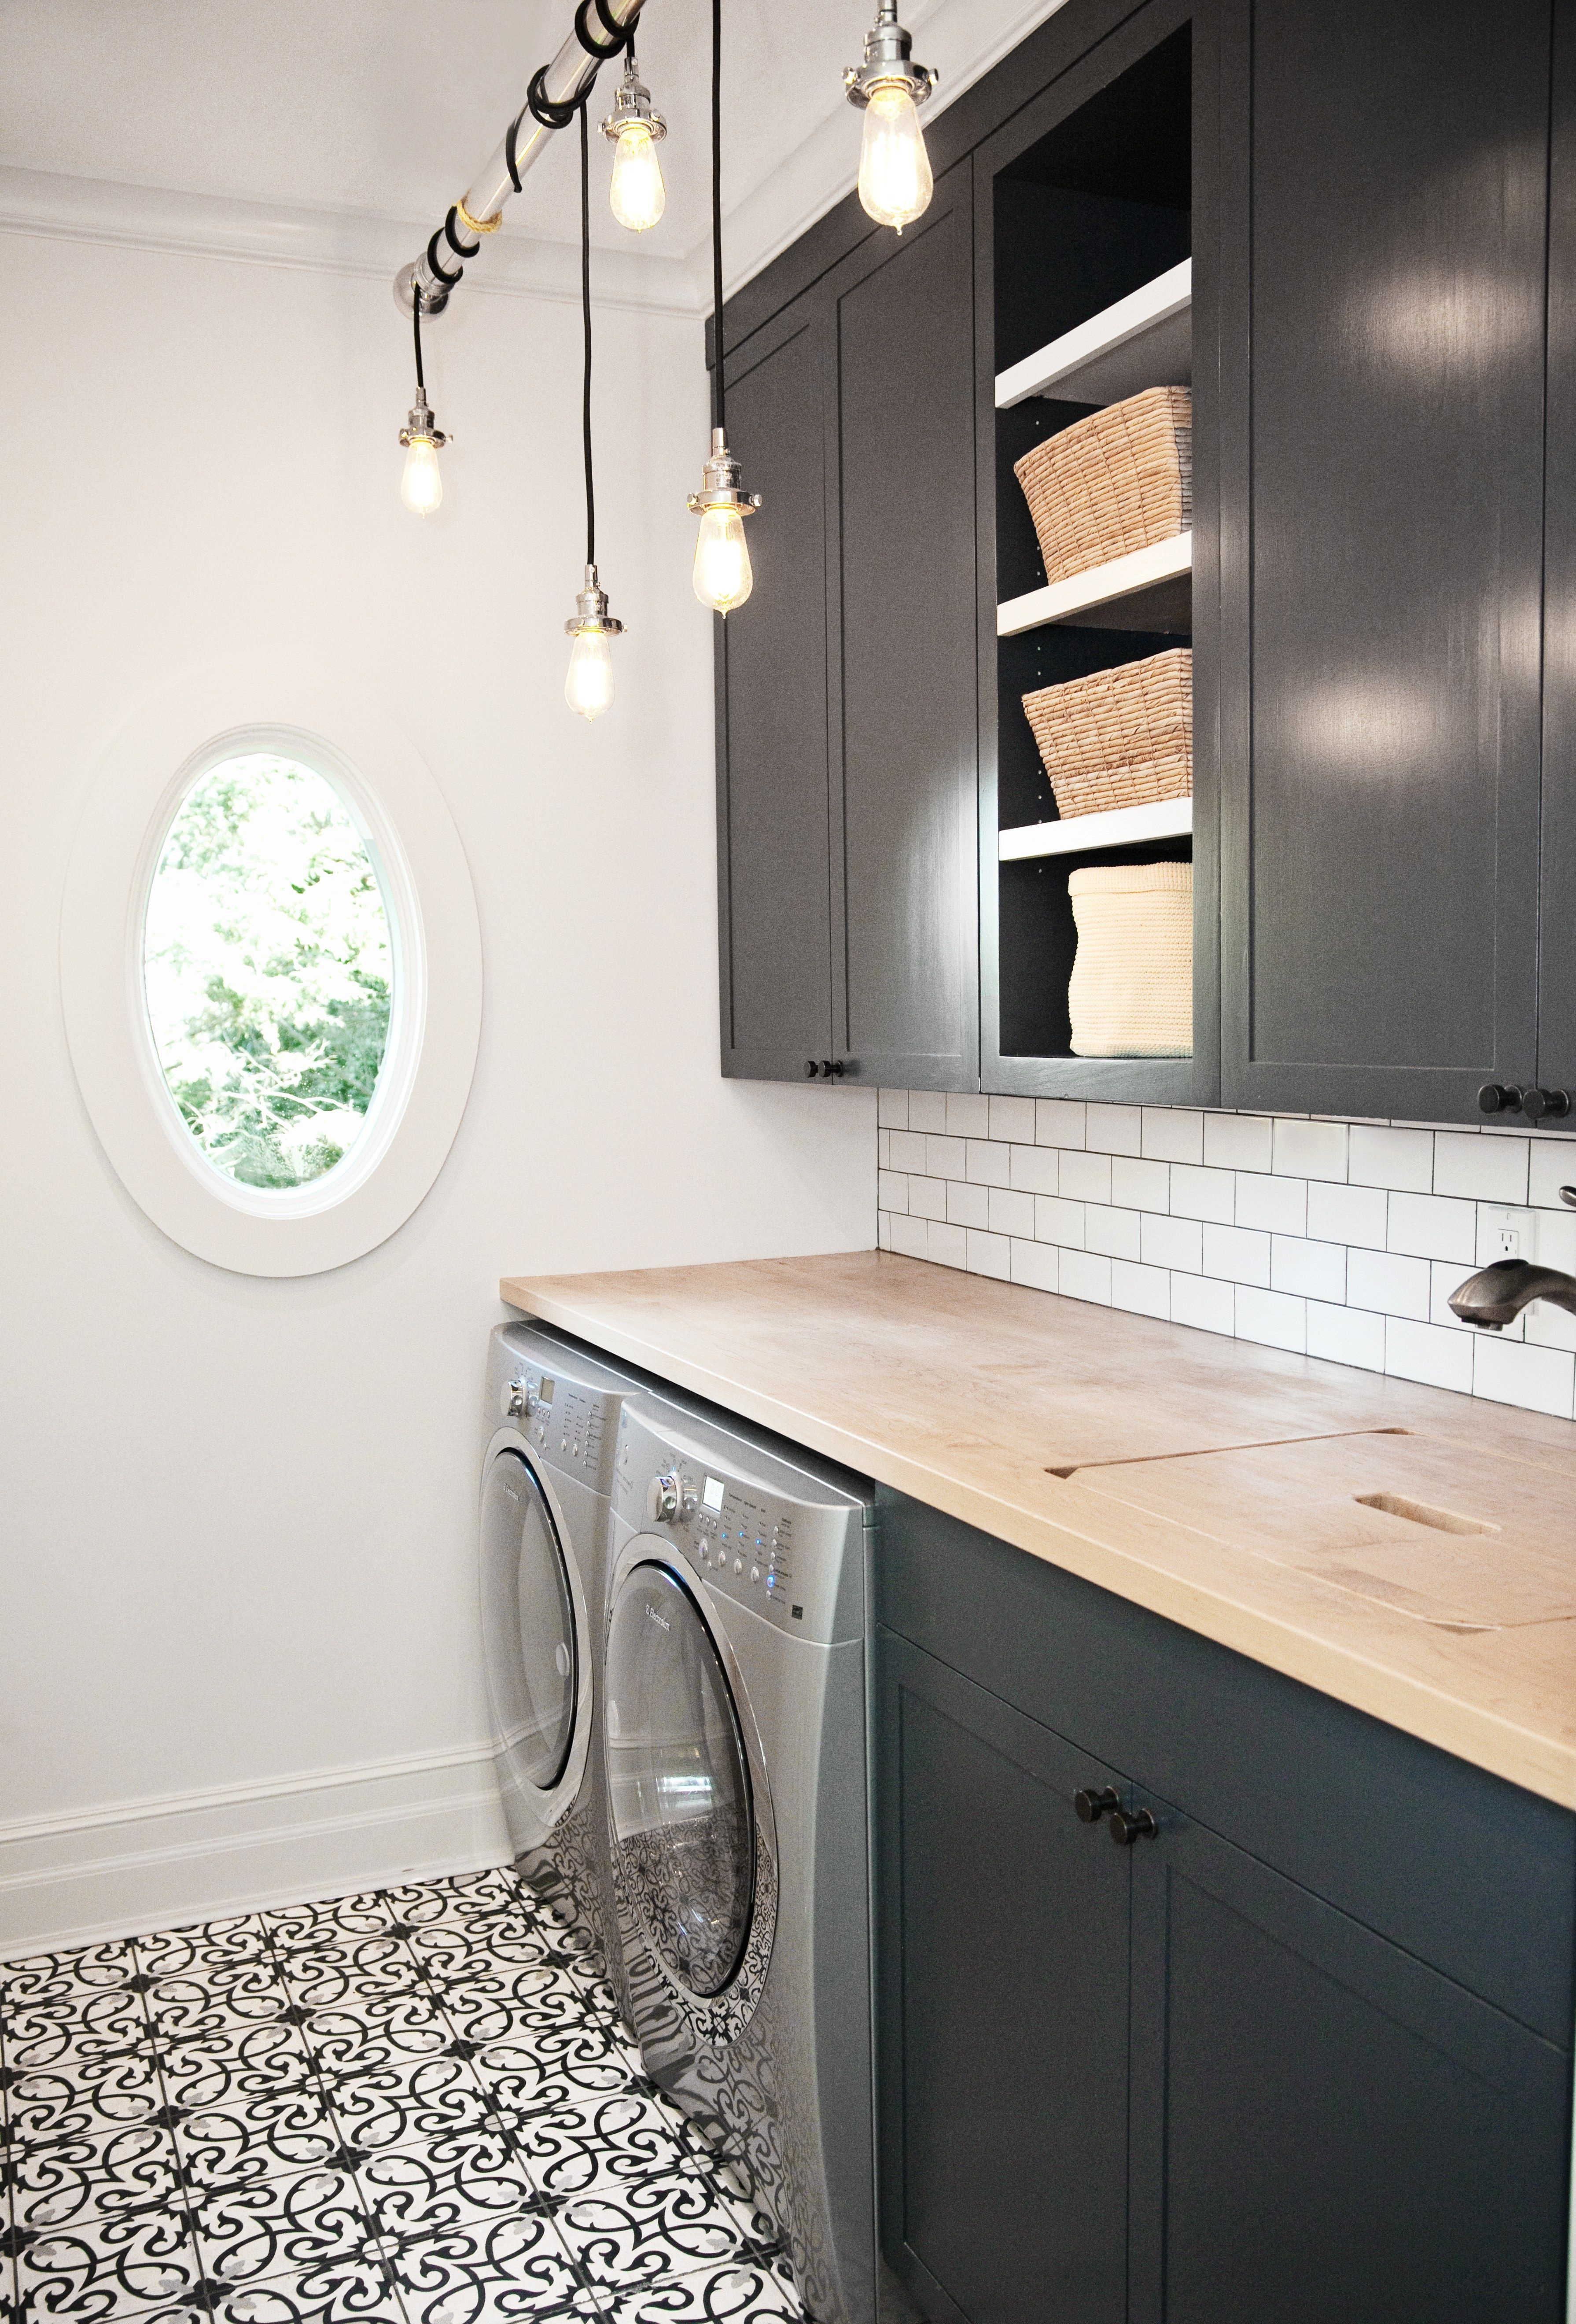 Laundry room cabinets black - 5 Laundry Room Ideas From Designer Gillian Pinchin